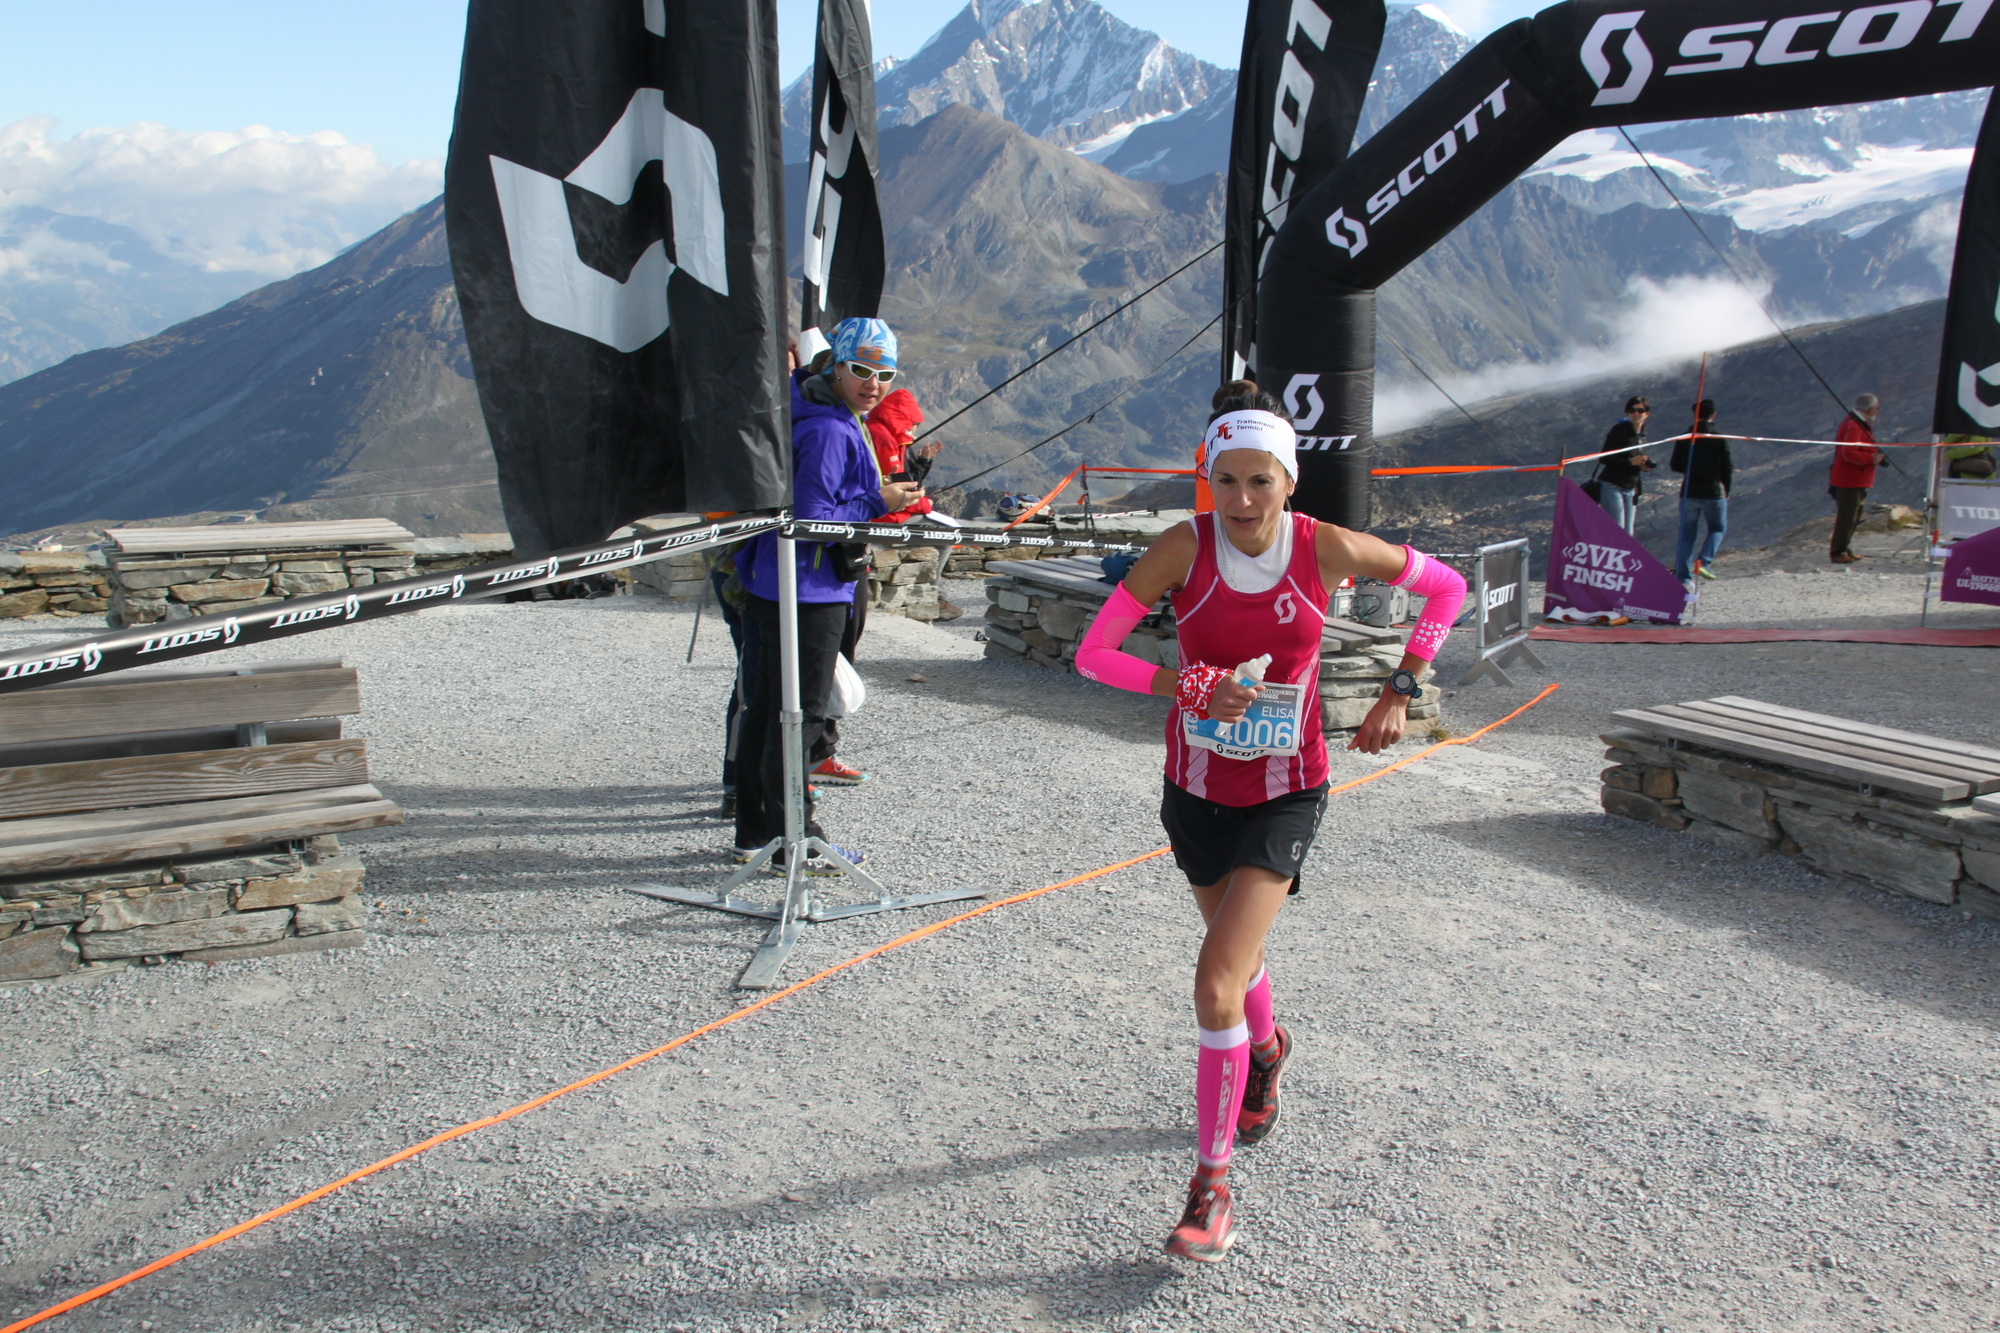 Matterhorn Ultraks_News_2014_RUNNING_SCOTT-Sports (1)